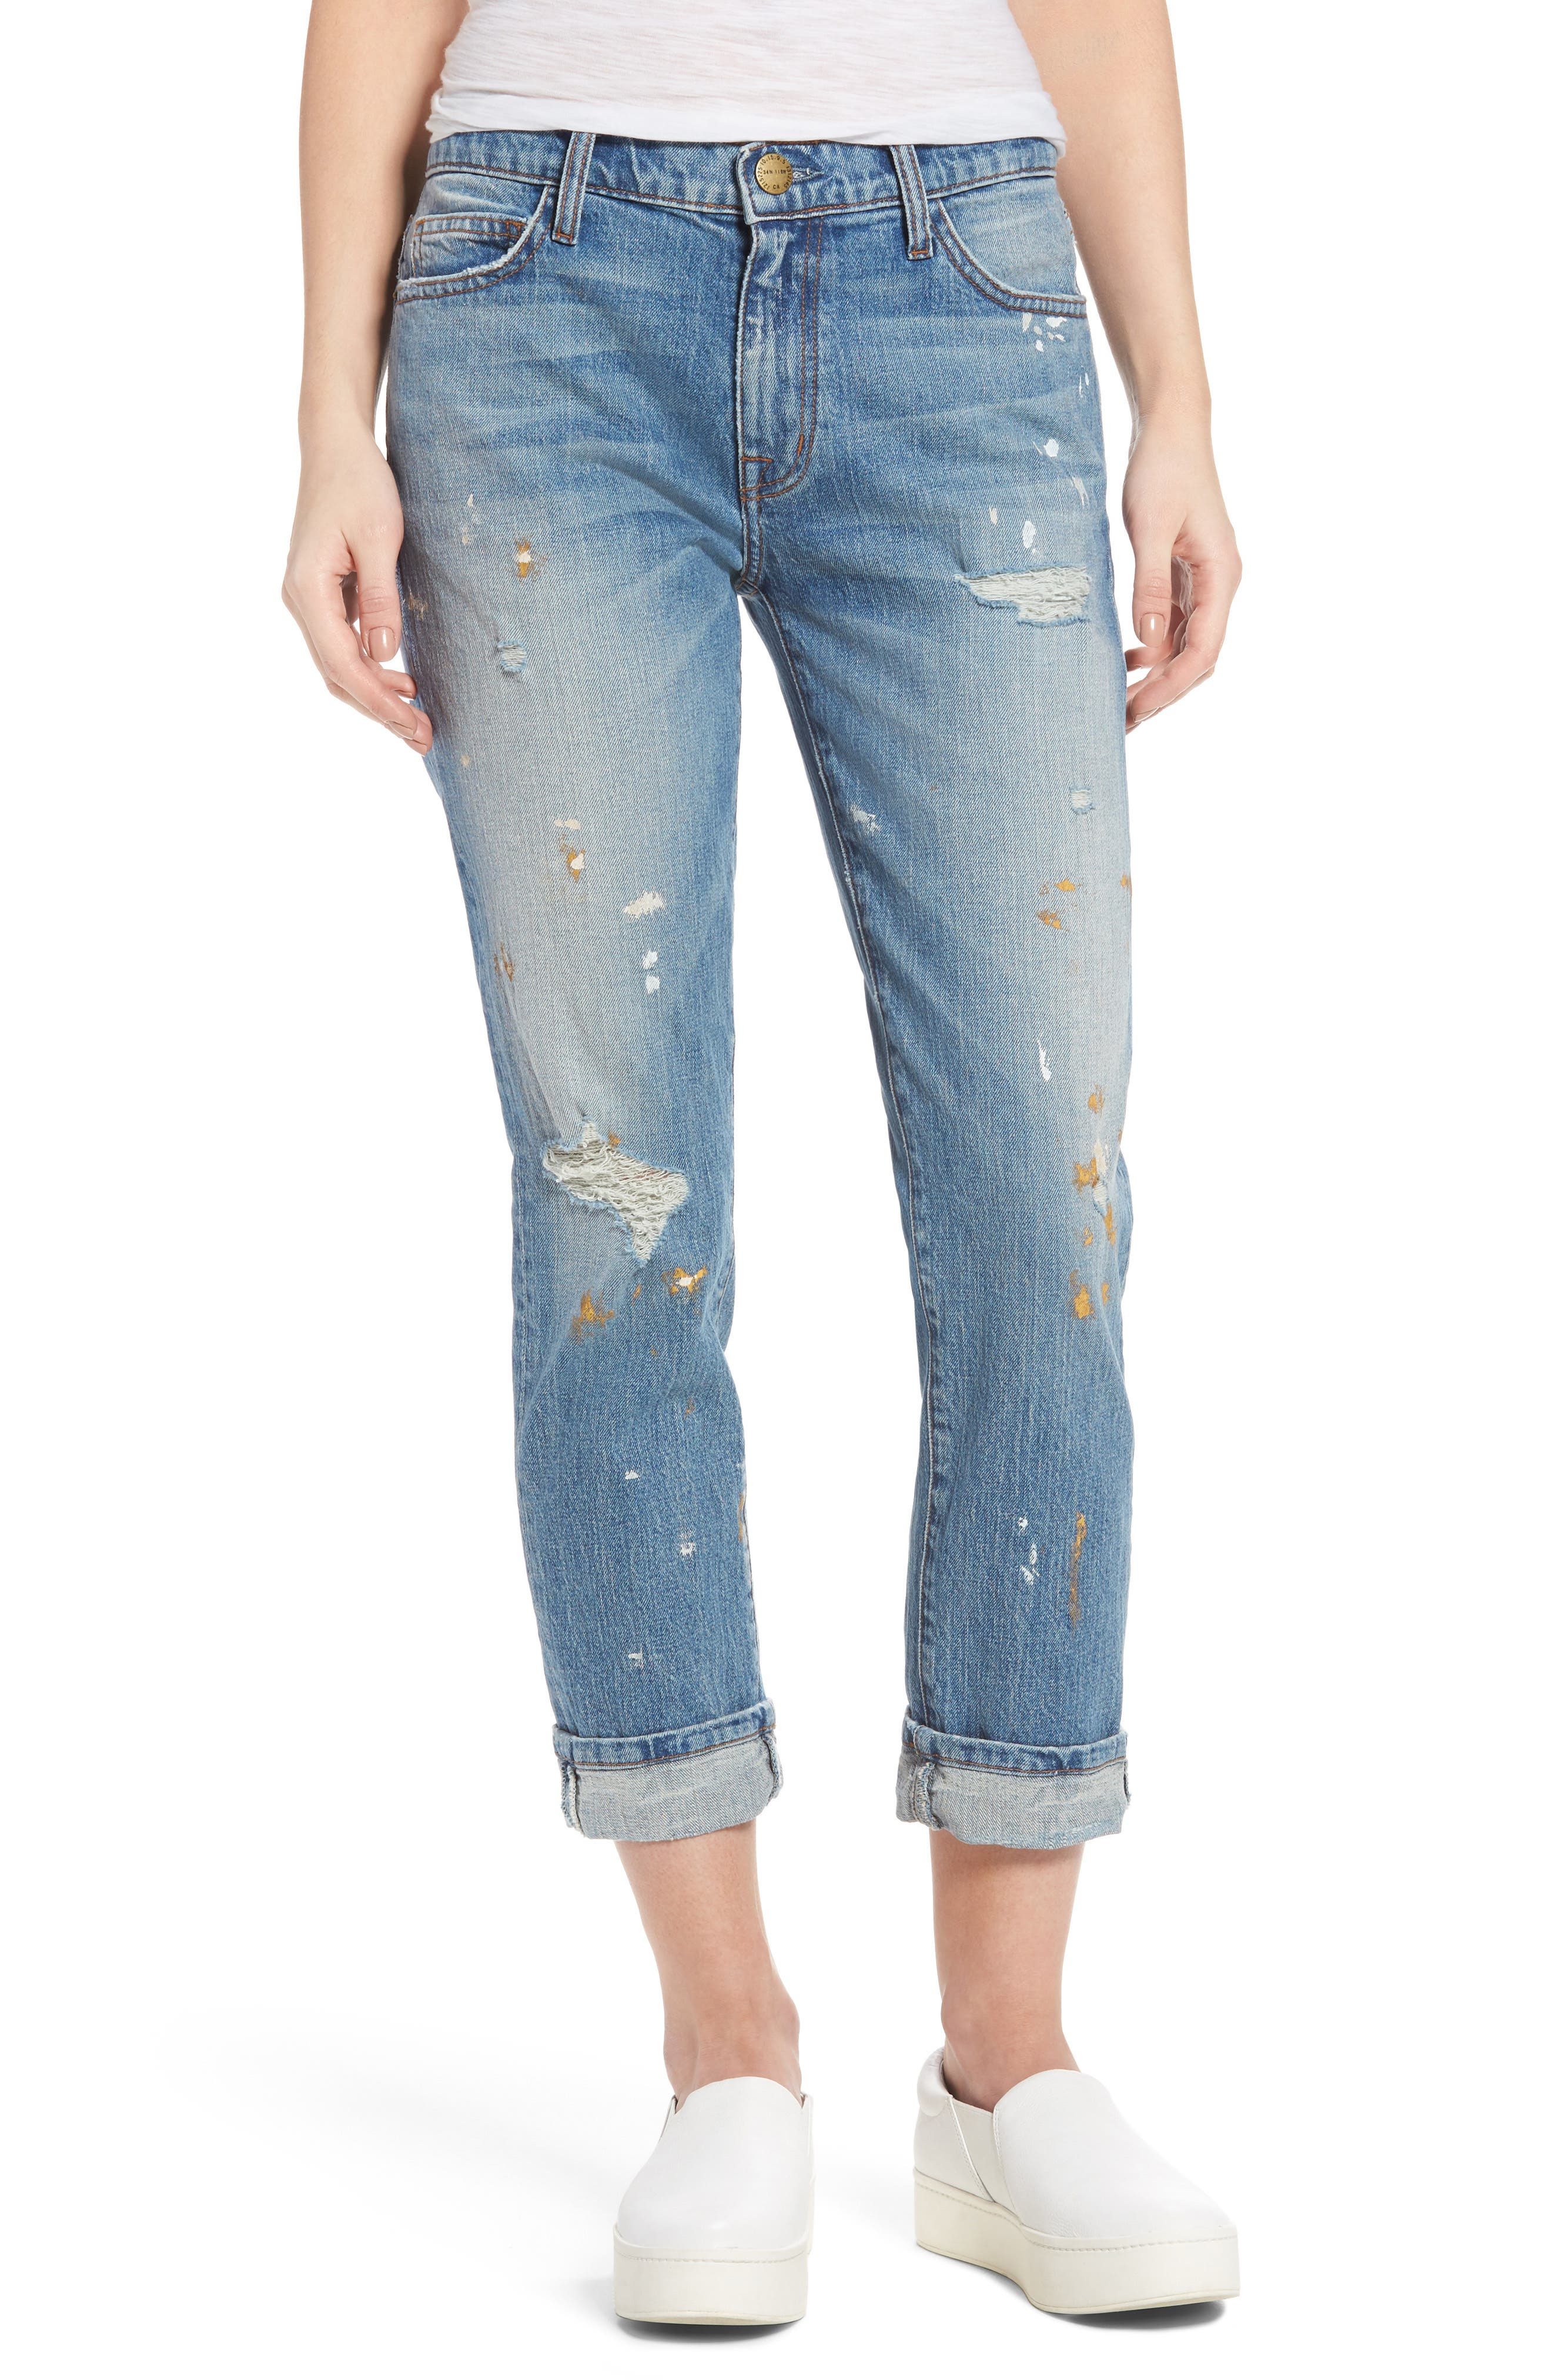 Fling Distressed Rolled Jeans,                             Main thumbnail 1, color,                             Bolero